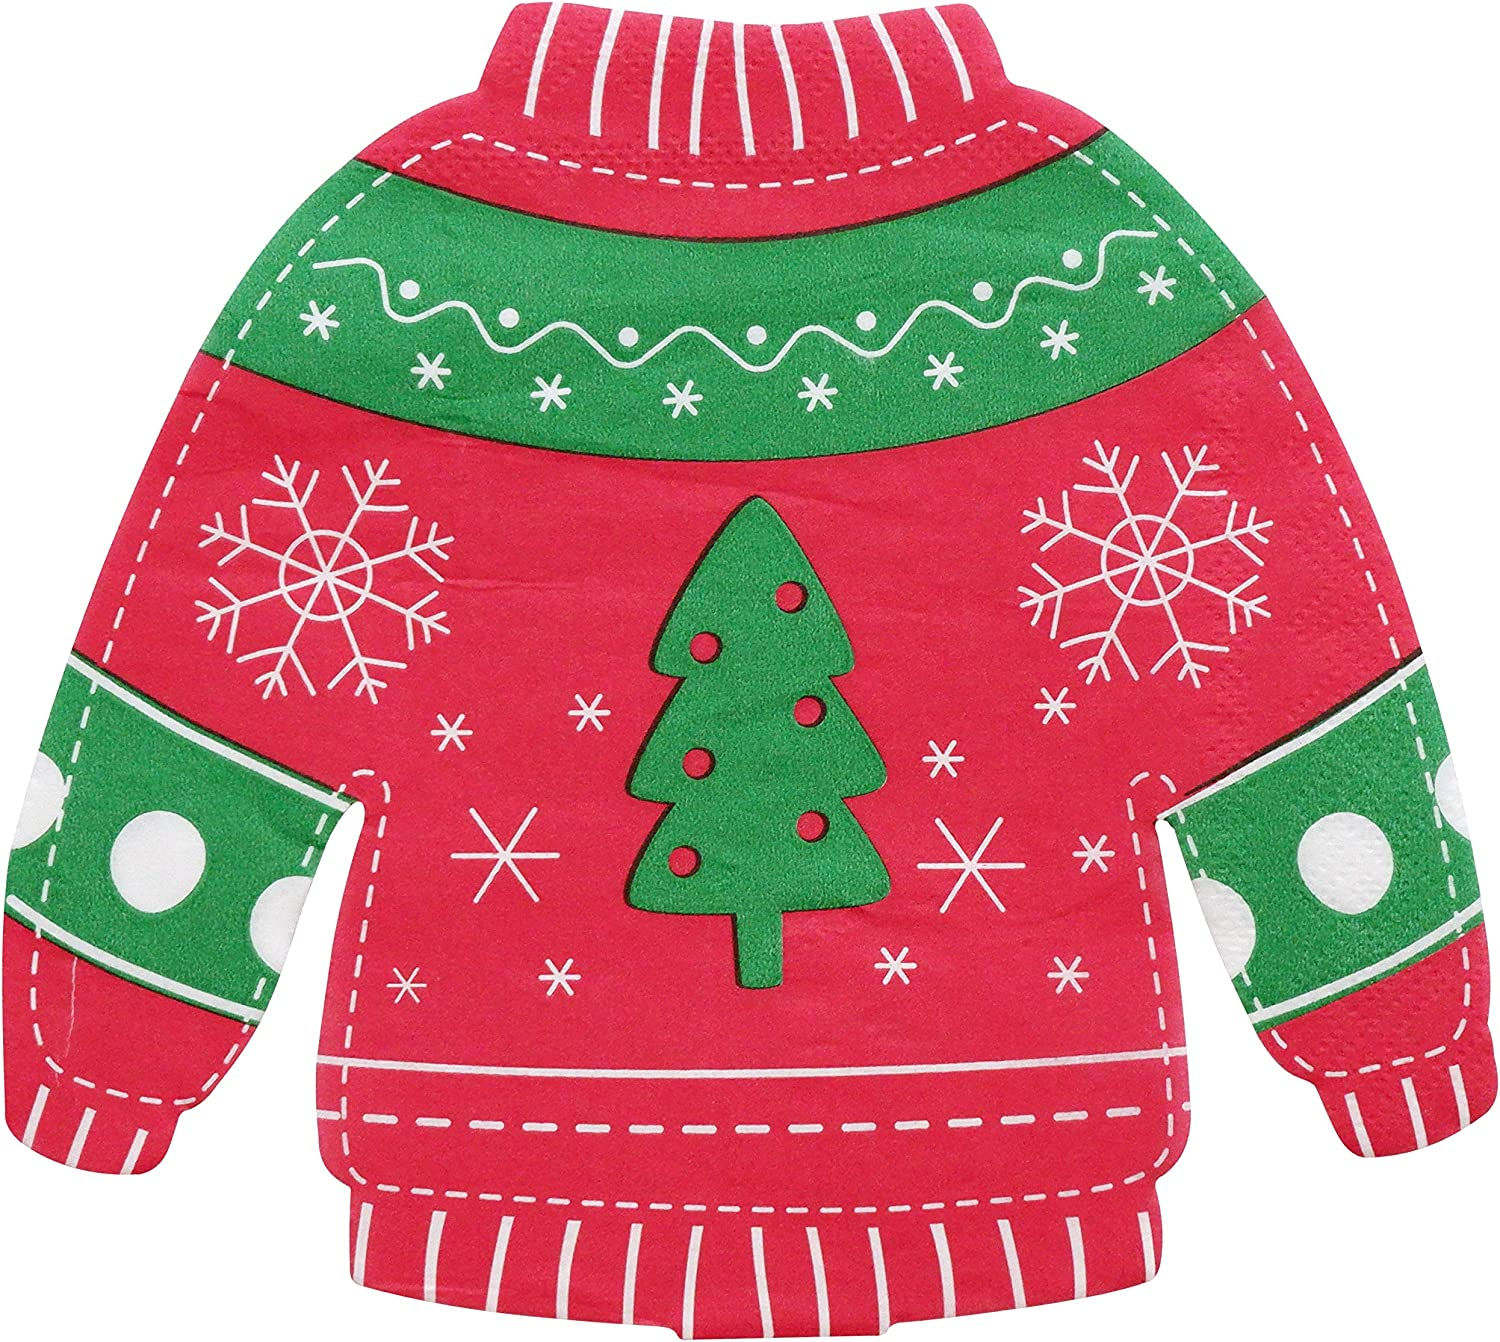 Christmas Party Napkins - 50 Pack Red  Green Ugly Sweater Cockt